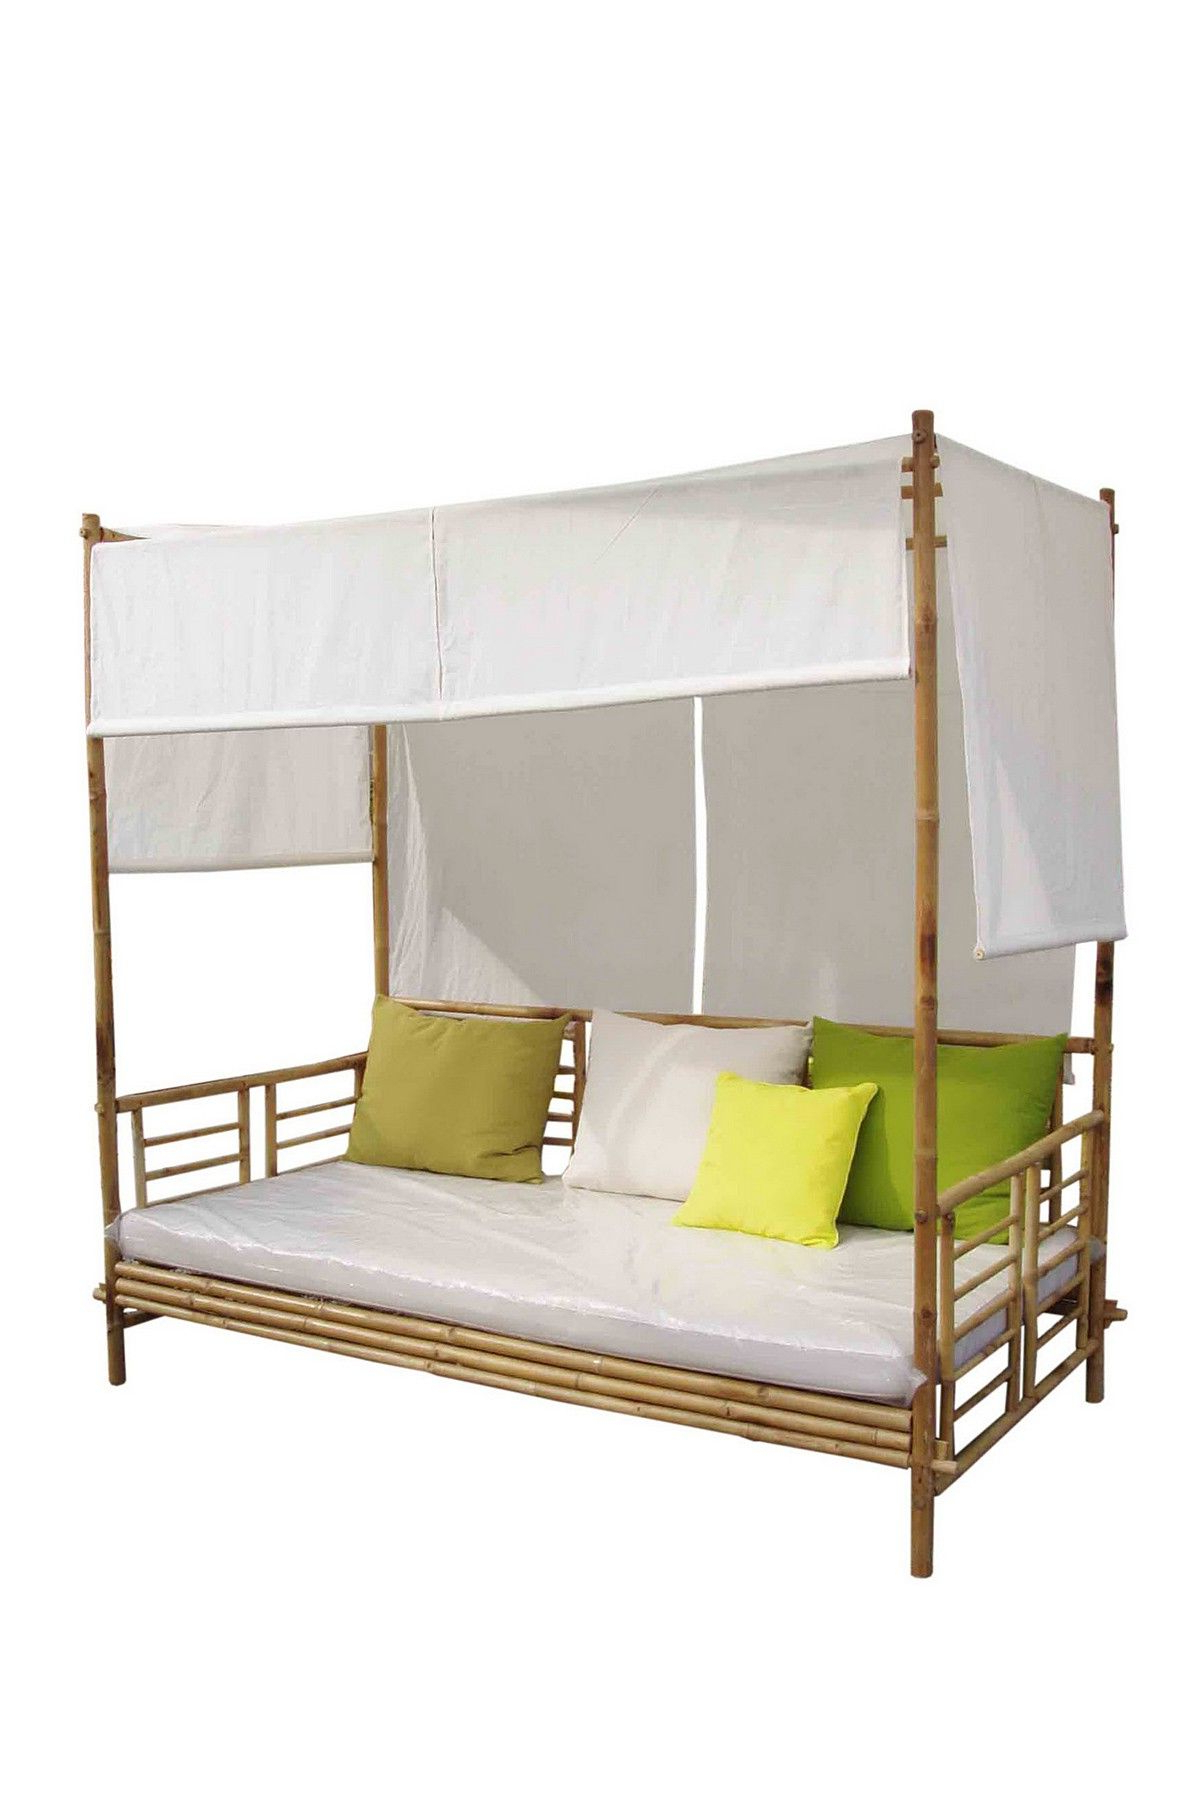 Most Popular Bamboo Daybeds With Canopy Regarding Bamboo Daybed With Canopy – I Would Be On This Everyday (View 3 of 25)